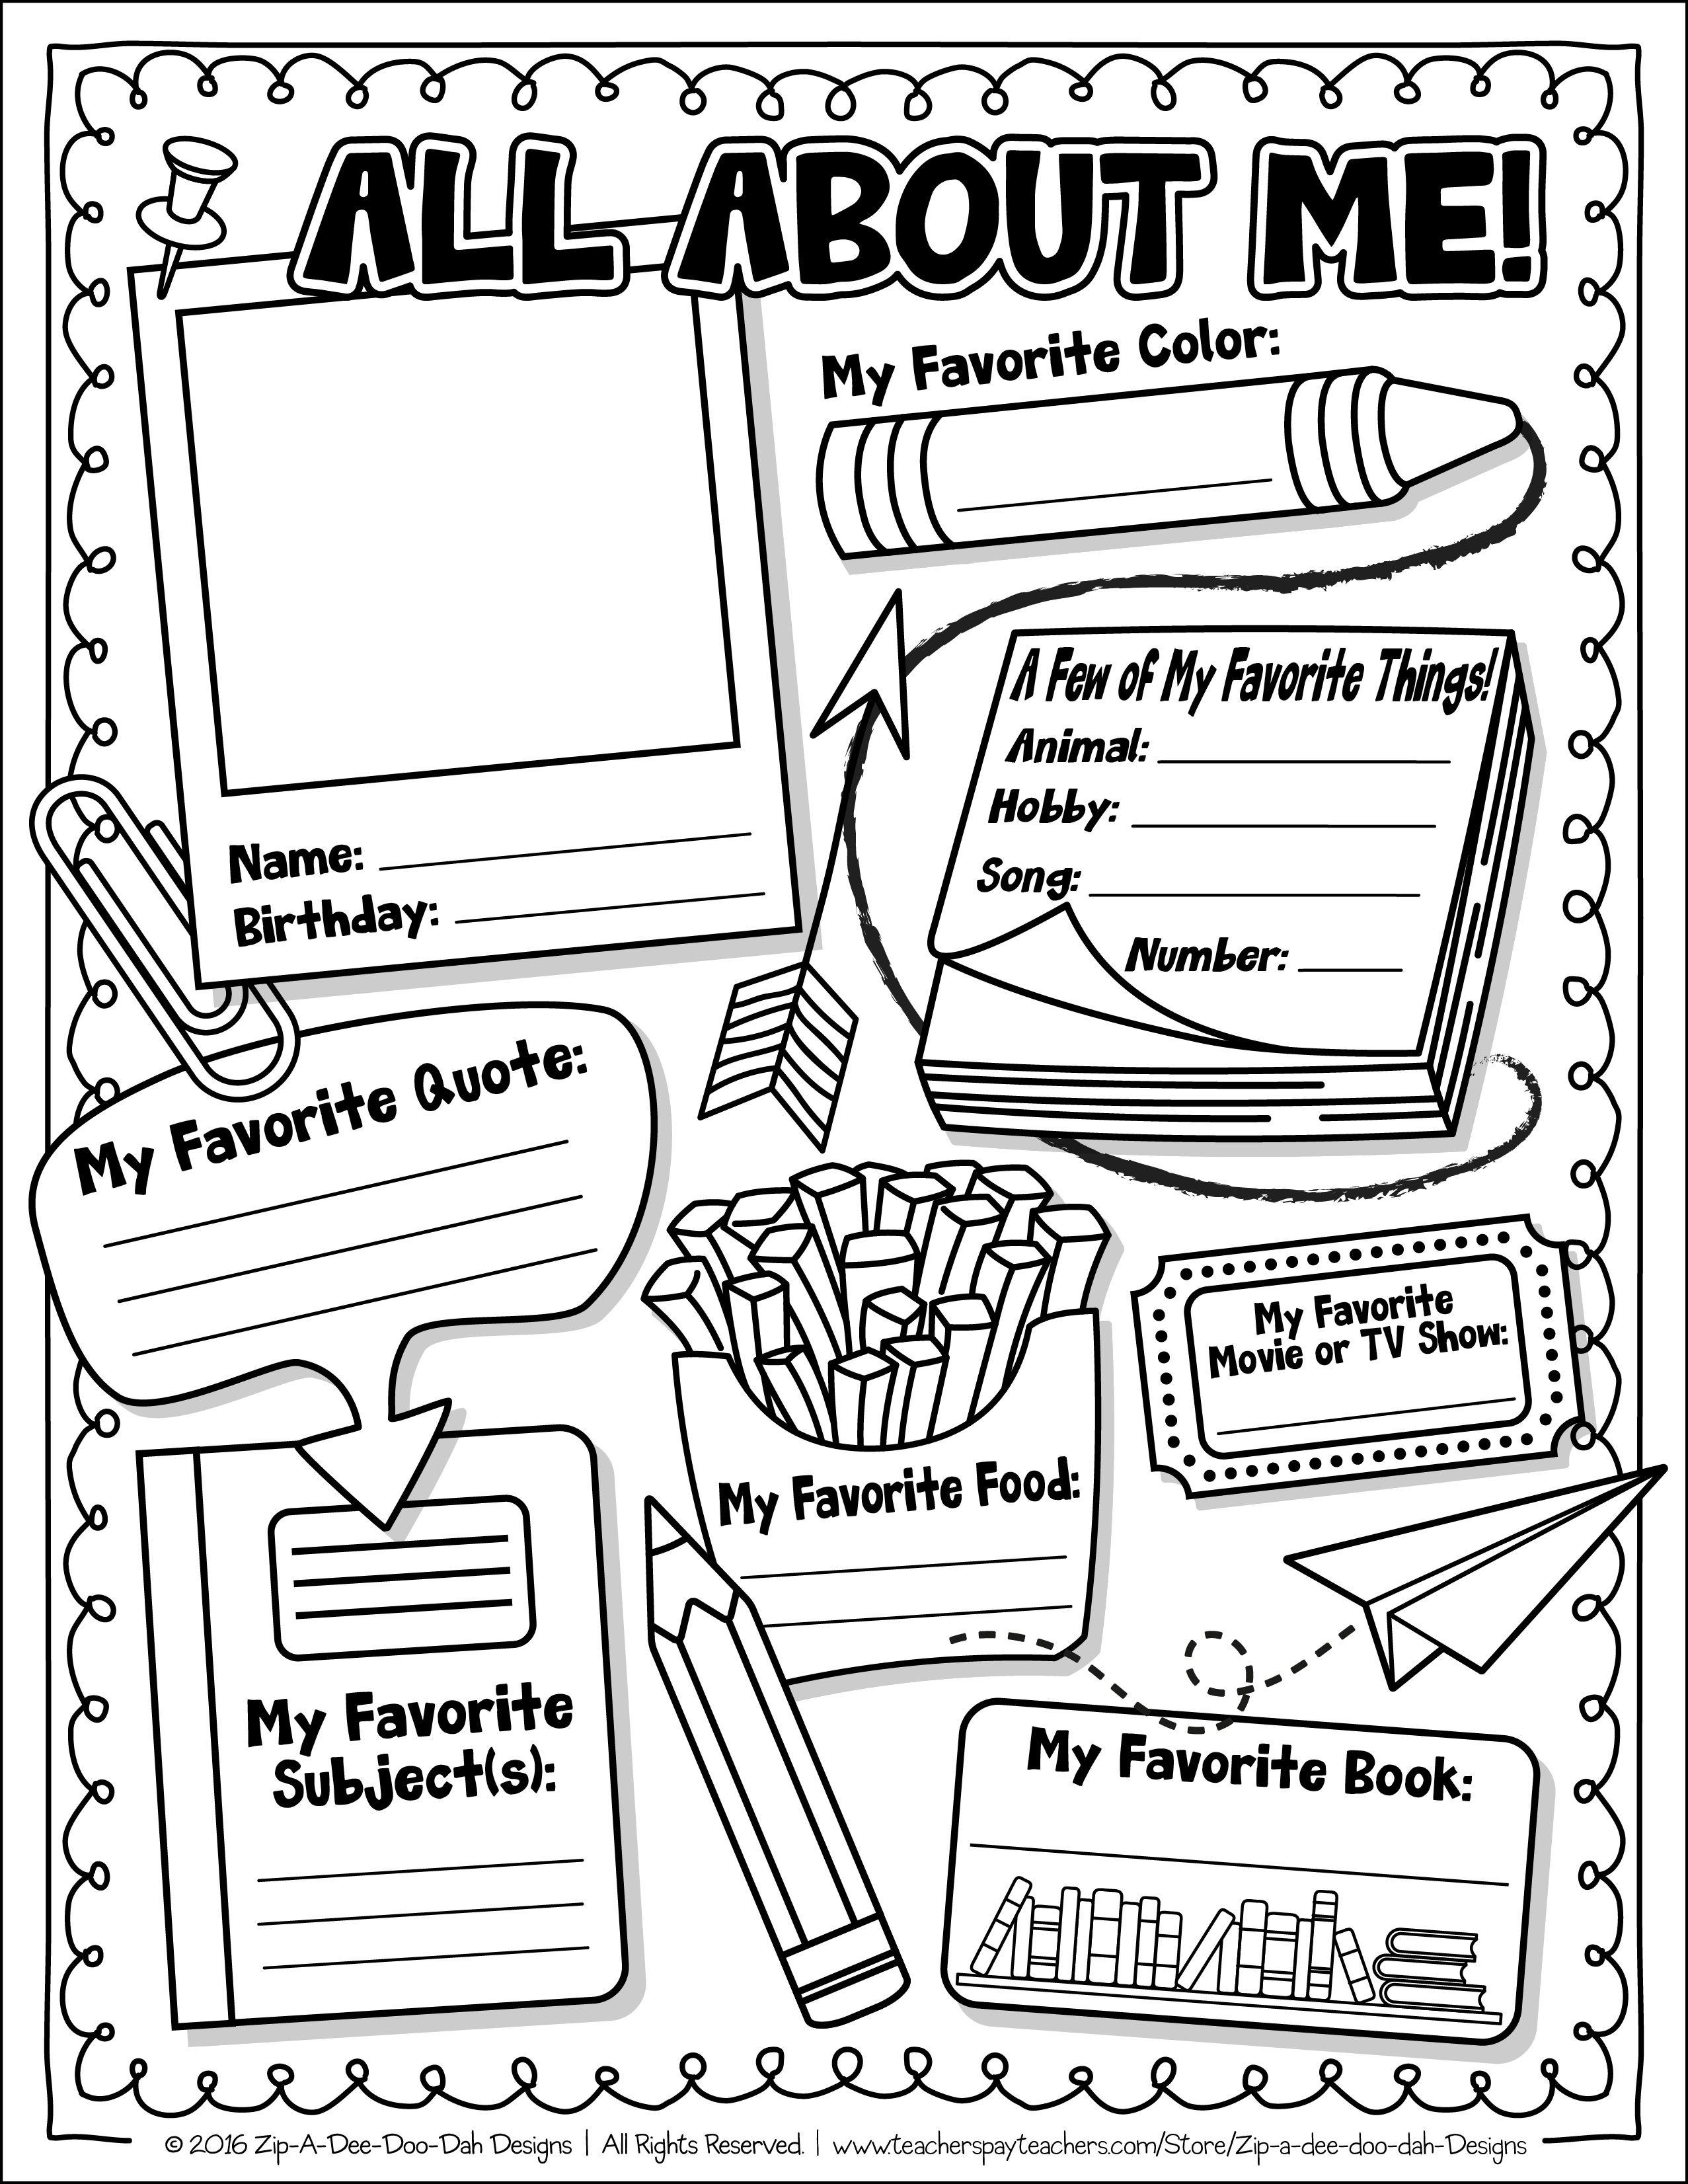 All About Me Preschool Printable Worksheets Letter